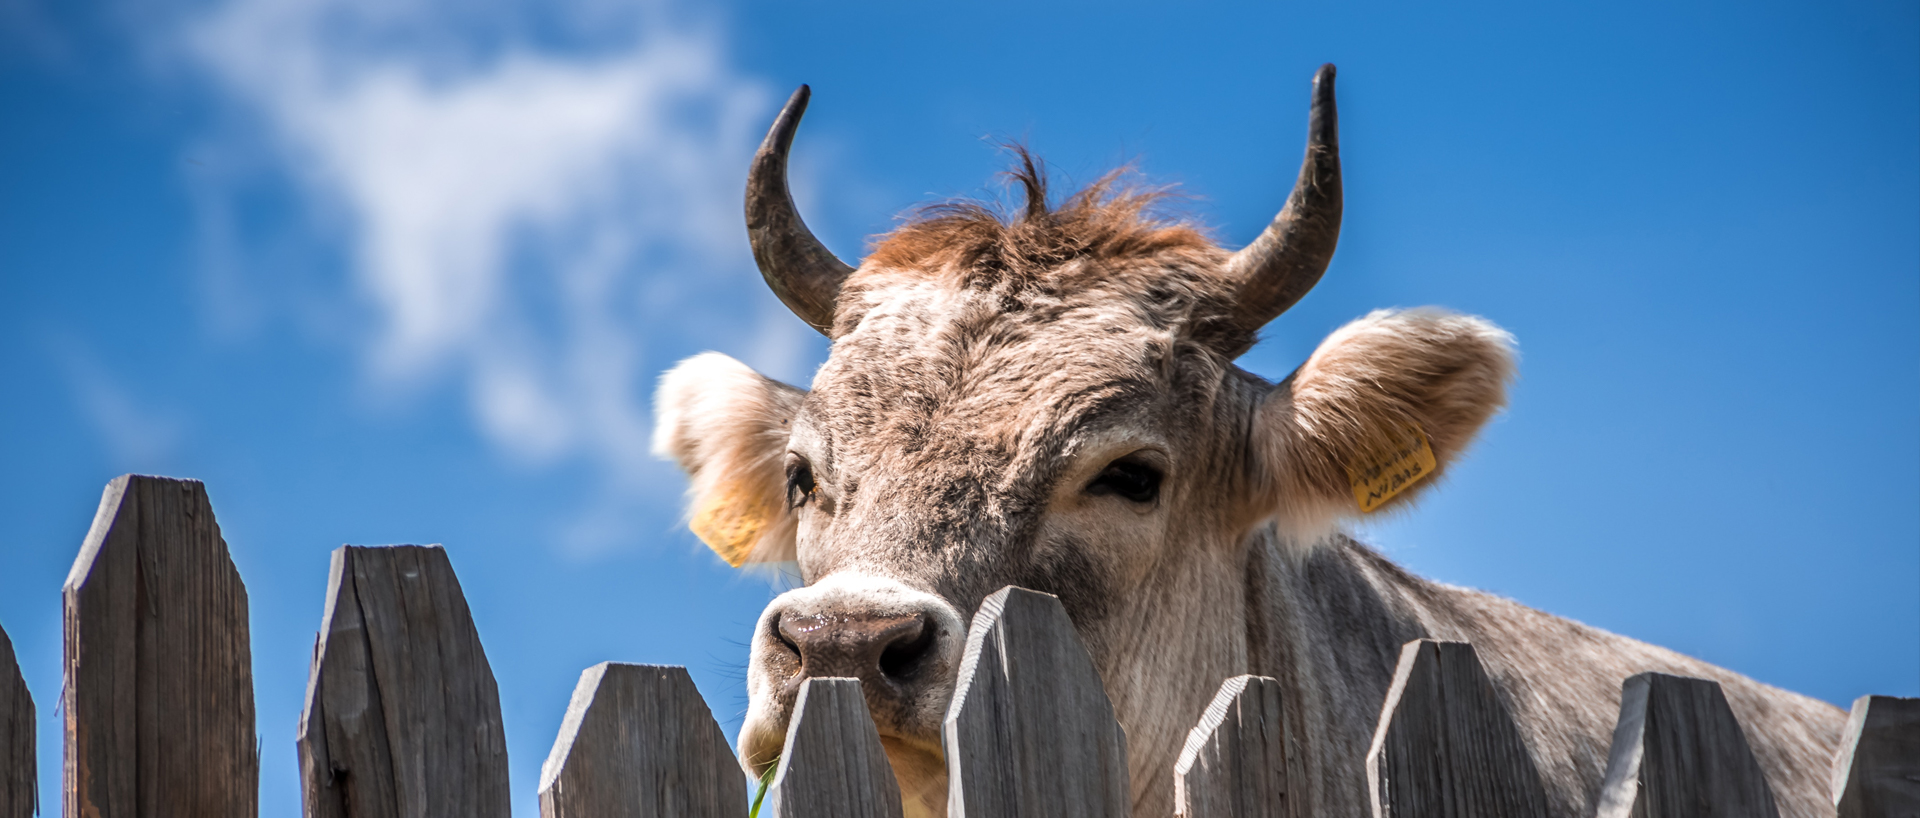 bull looking over a fence